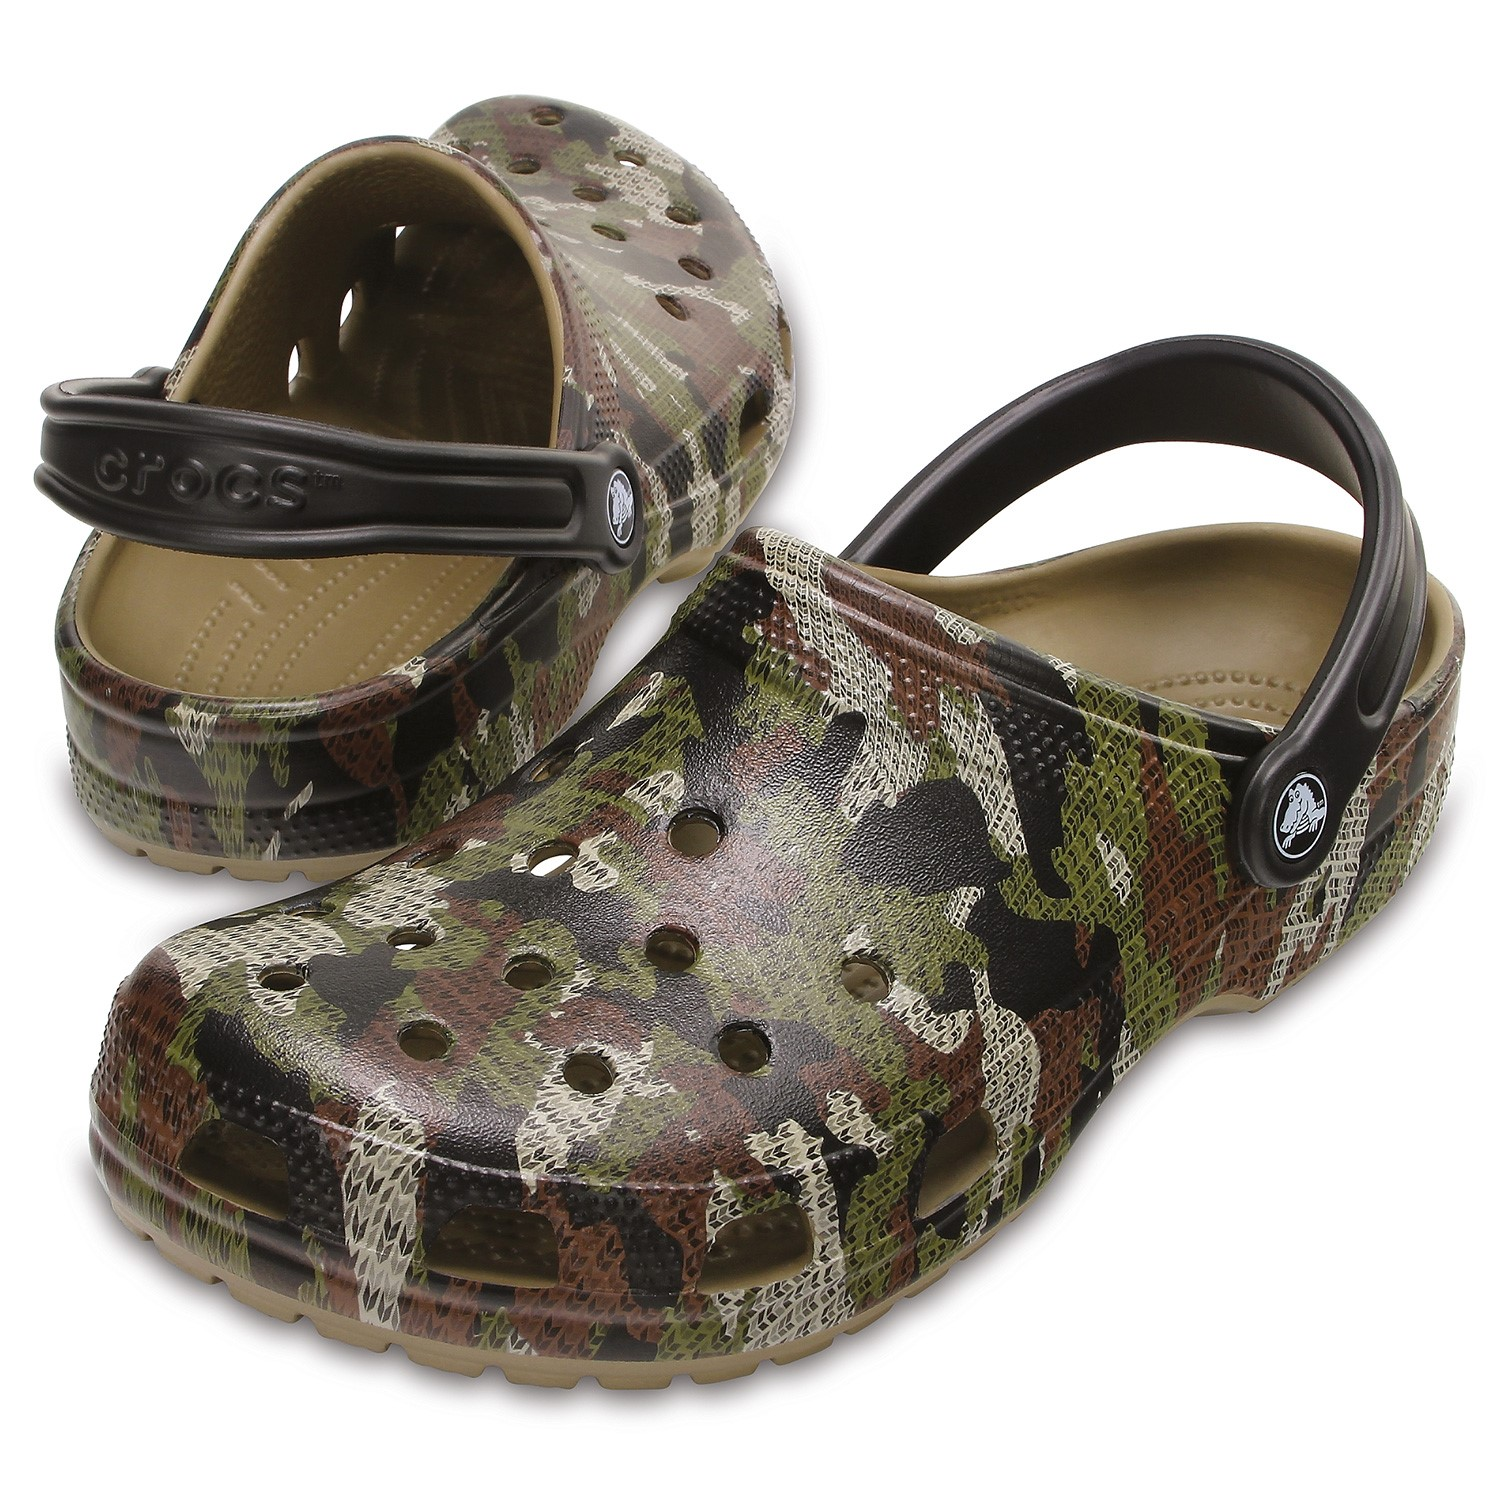 2f8bb43a62821 Crocs Classic Camo Clog Unisex - Slippers - Everyday shoes - Shoes ...